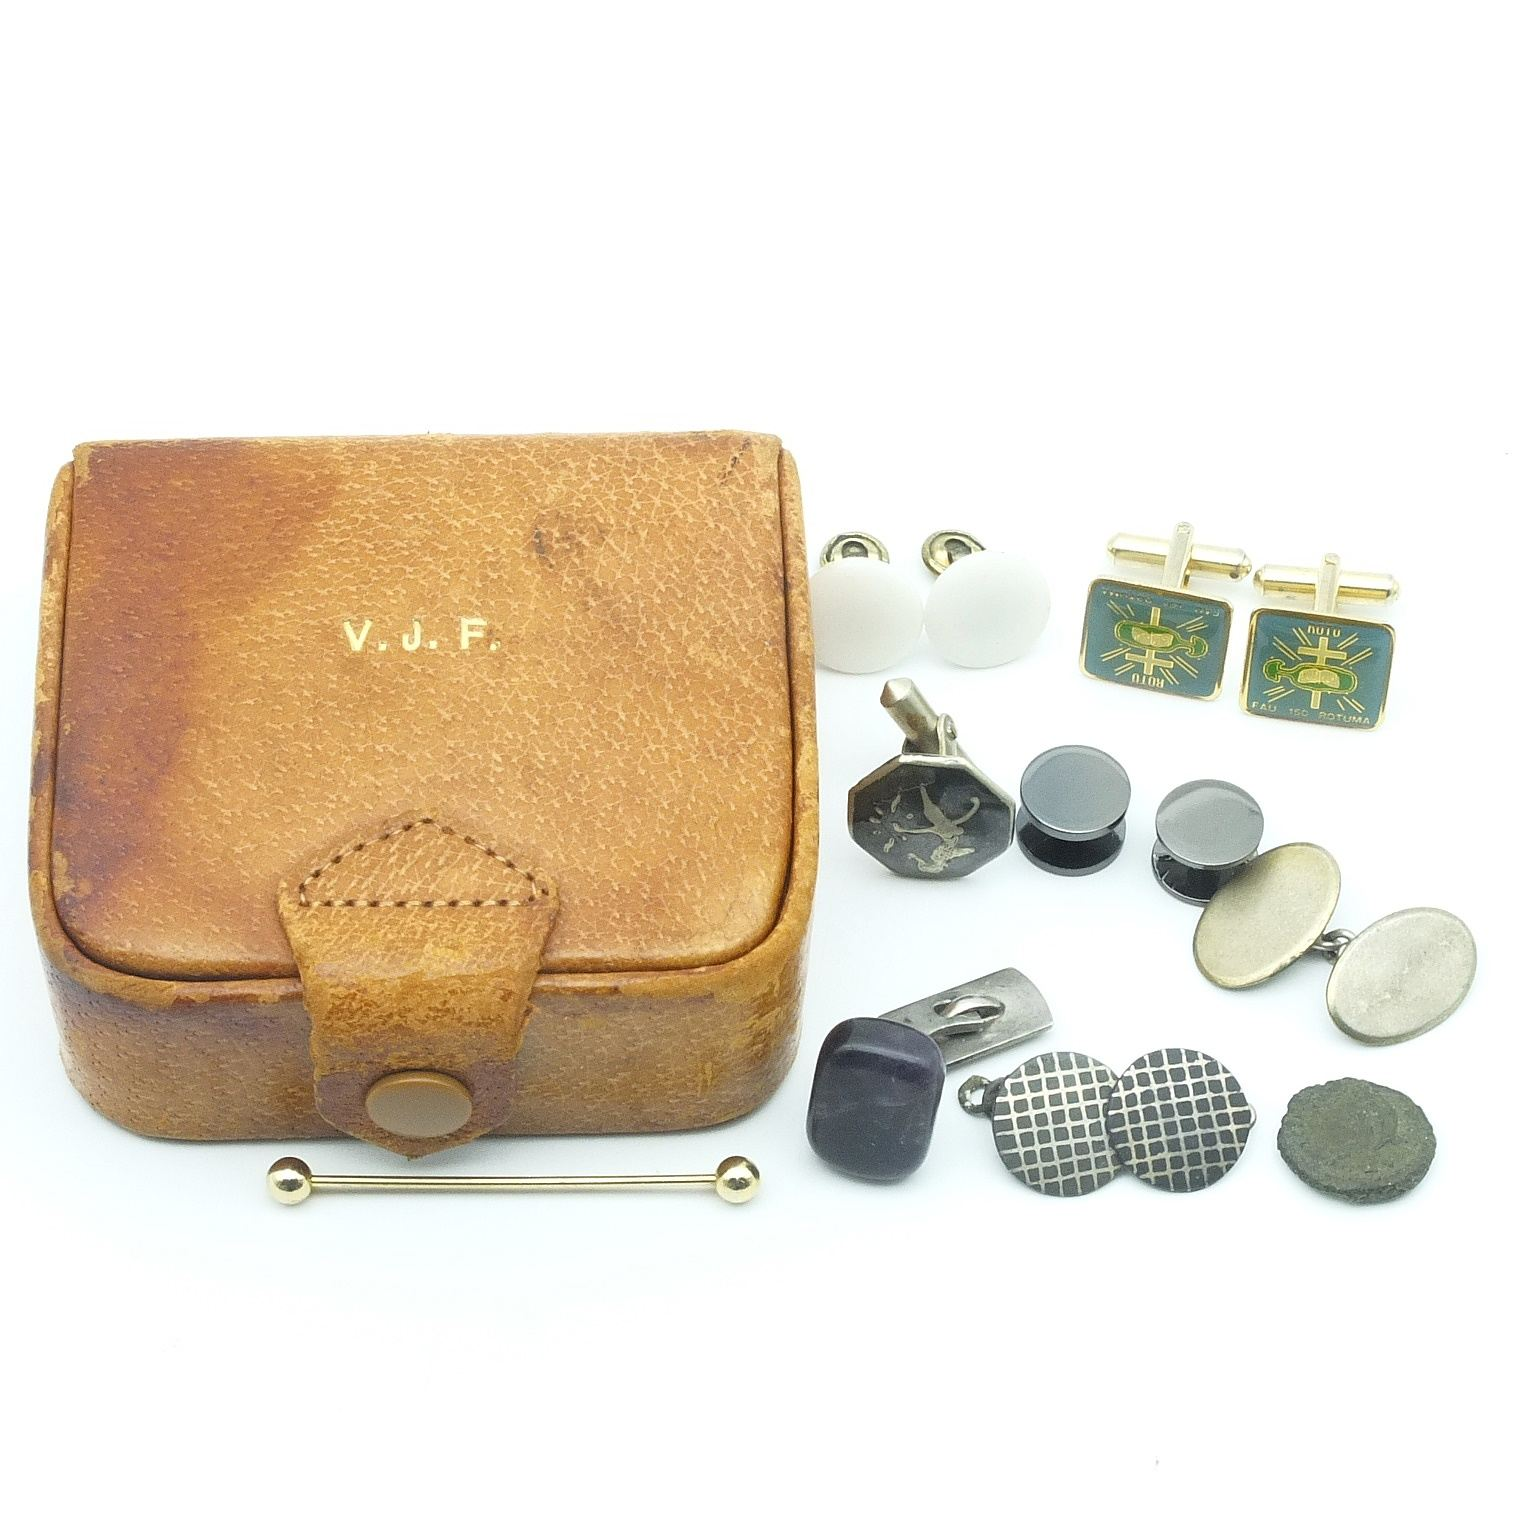 'Tie Bar, Ancient Coin, Monogrammed English Leather Box, Tumbled Piece of Amethyst and More'